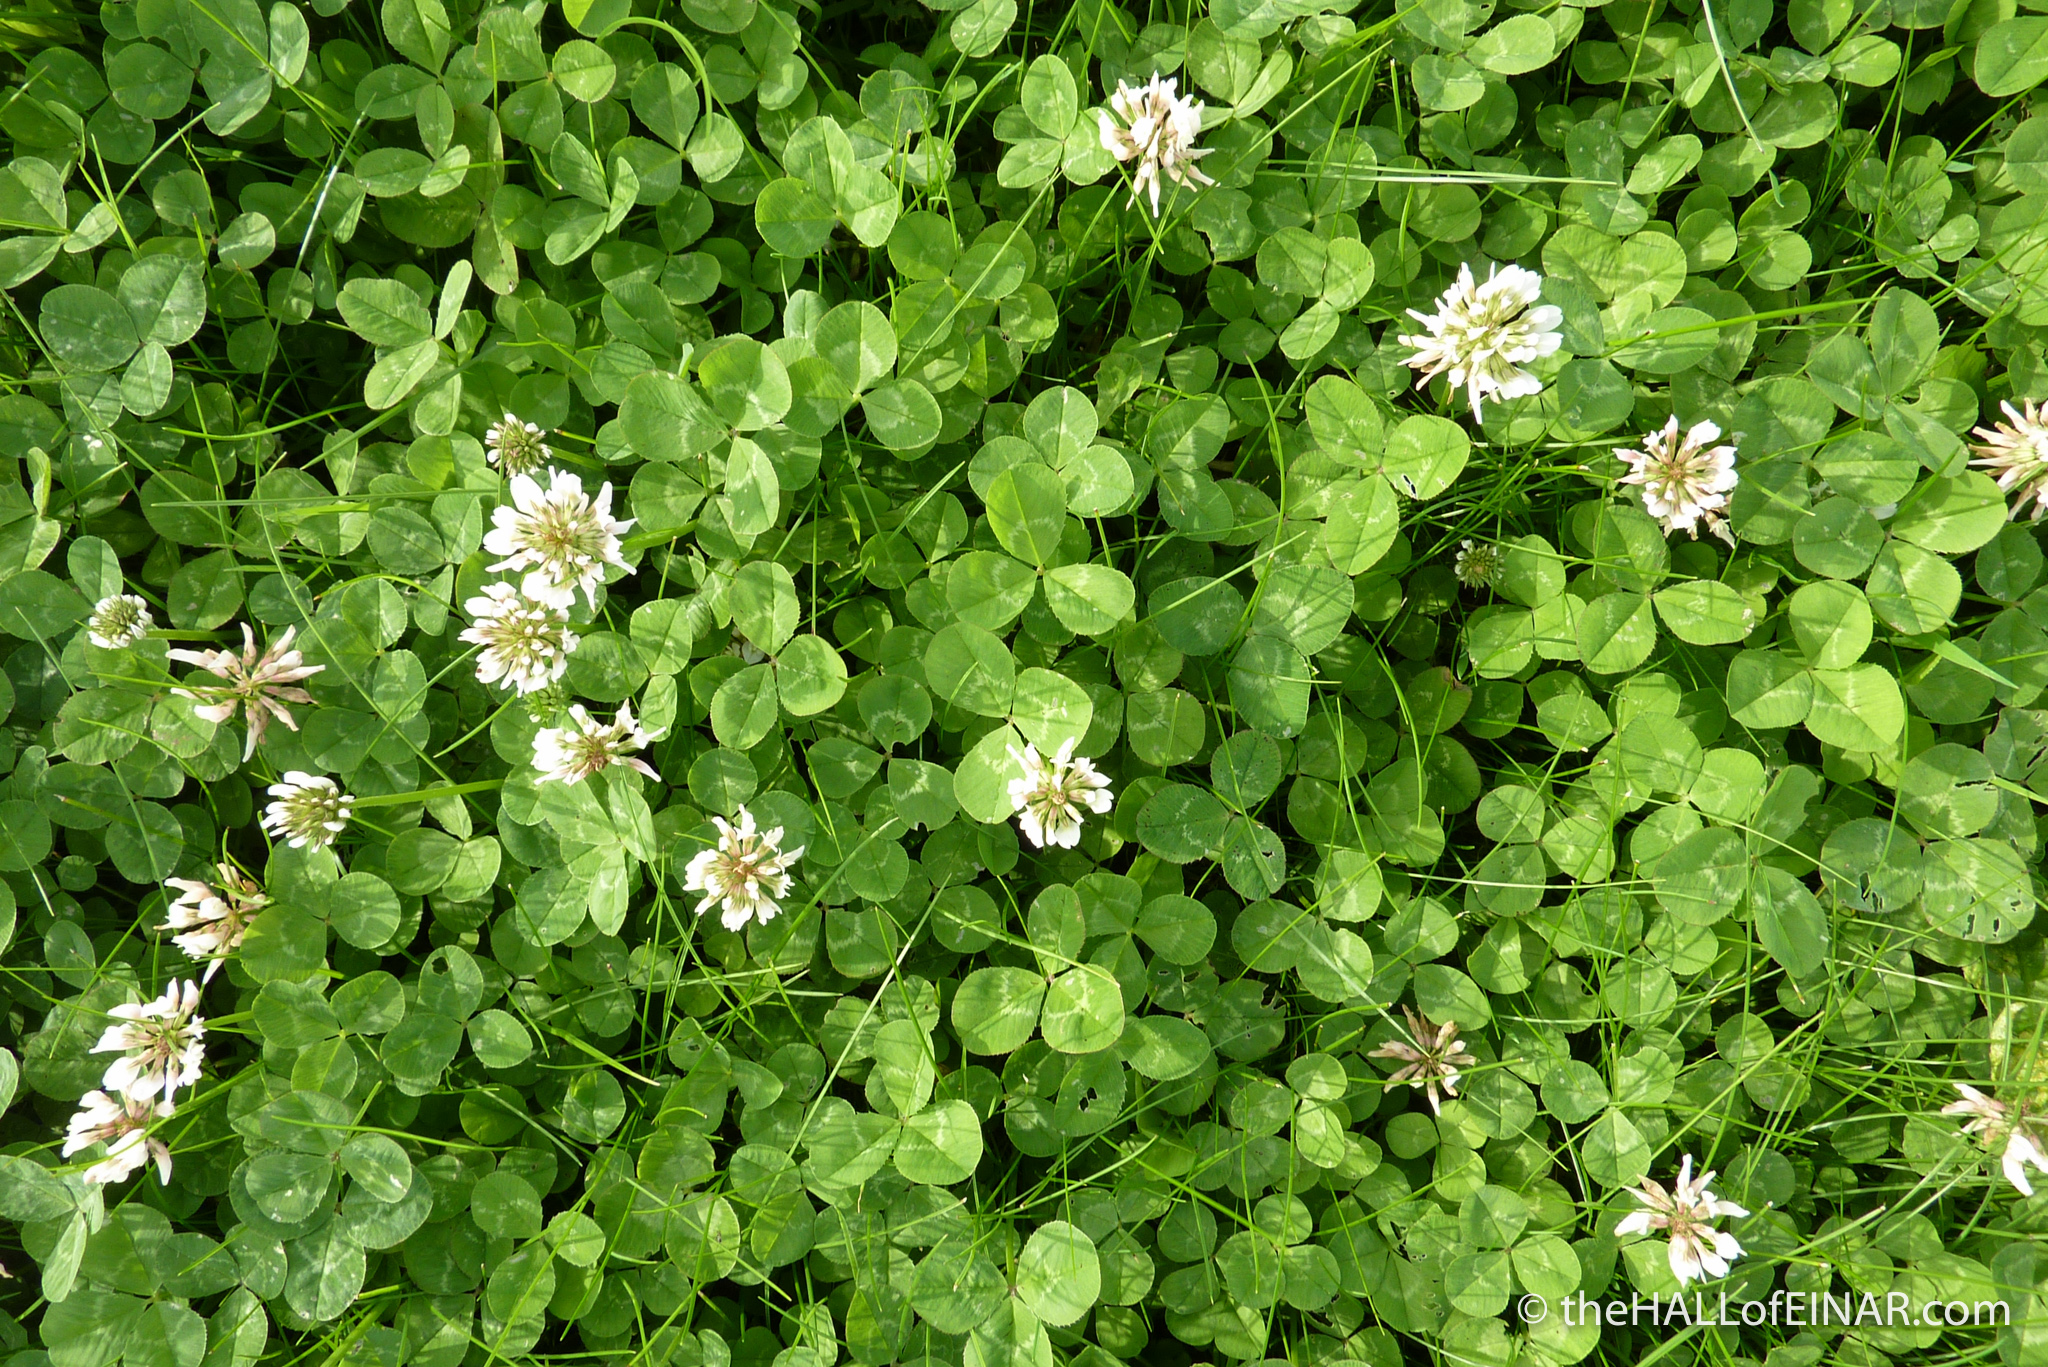 Rolling in the clover - photograph (c) 2016 David Bailey (not the)